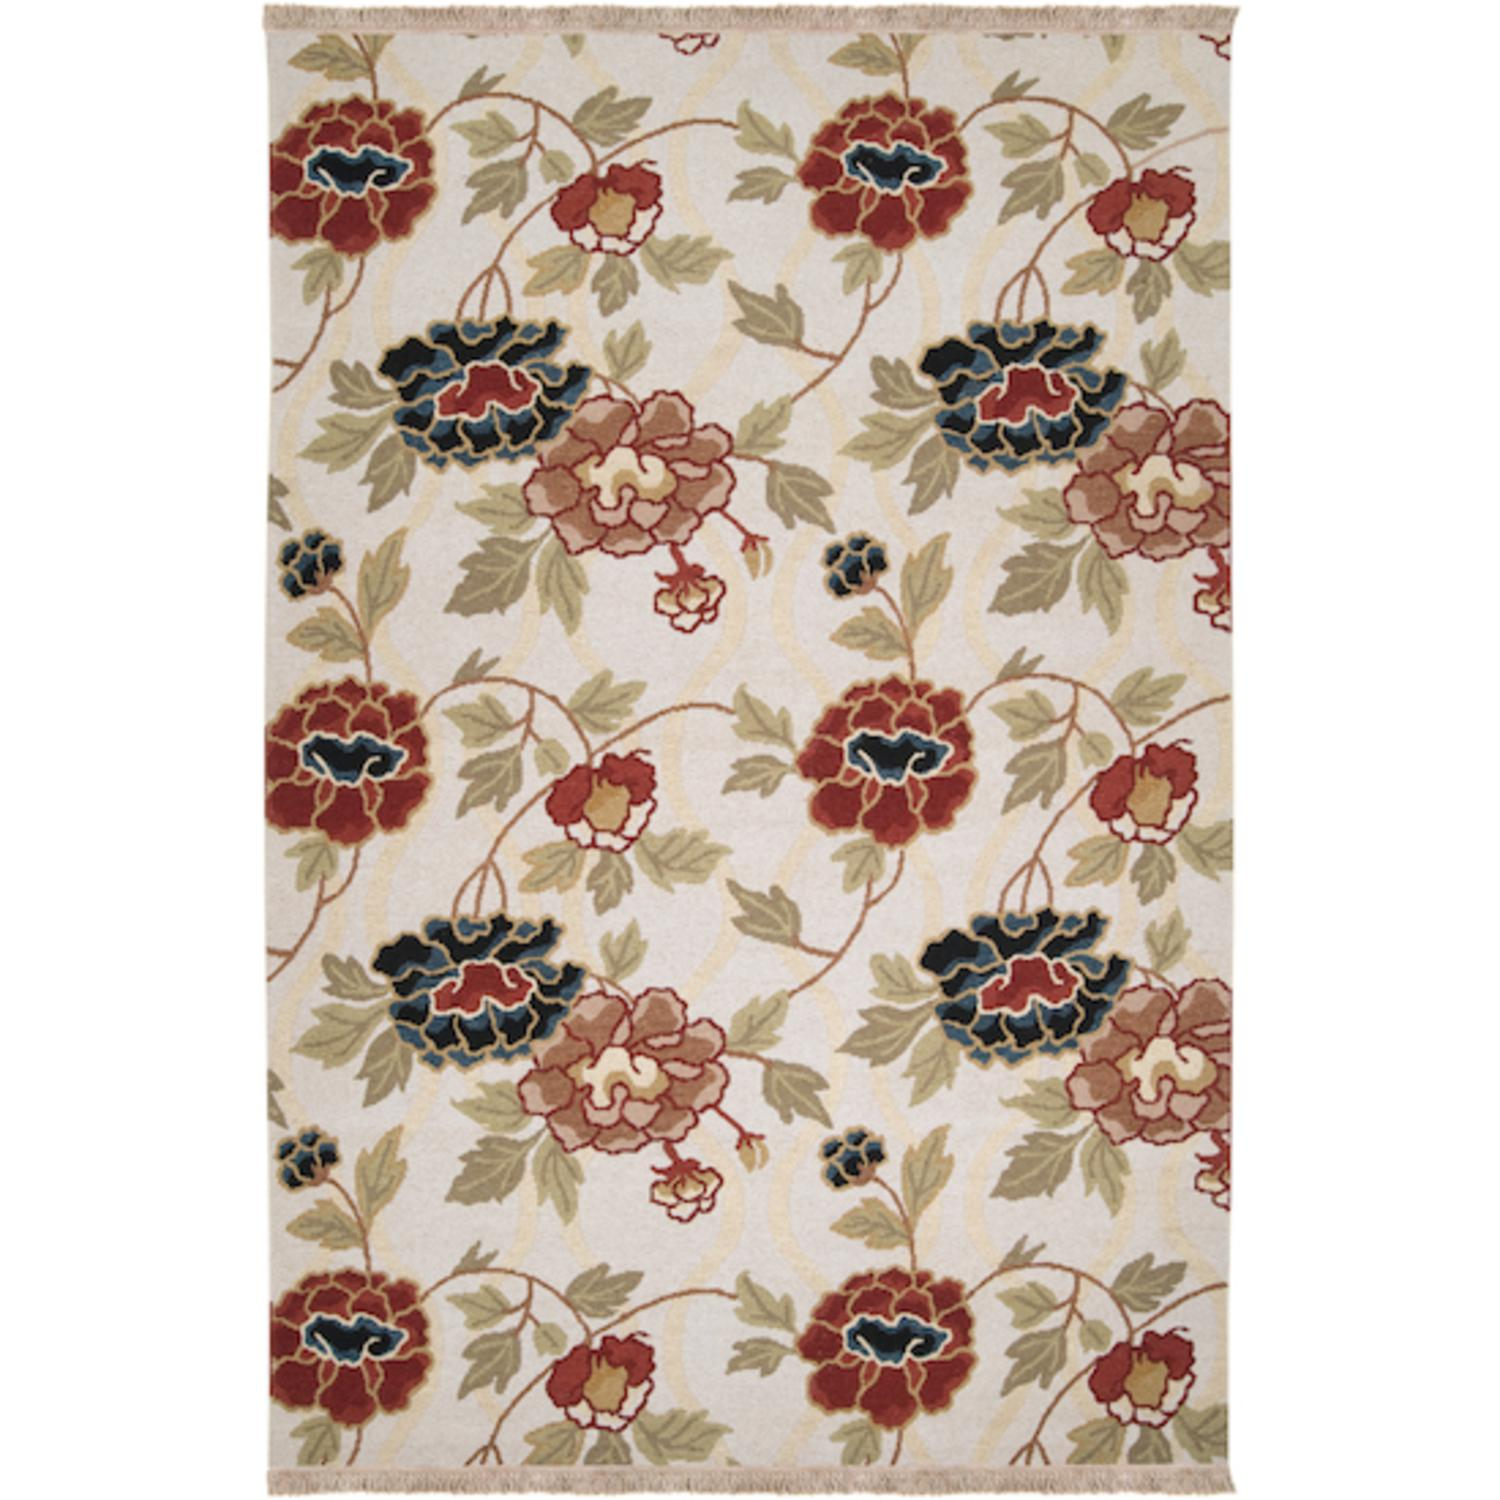 9' x 12' Heirloom Bouquet Fringed Khaki Floral Wool Area Throw Rug